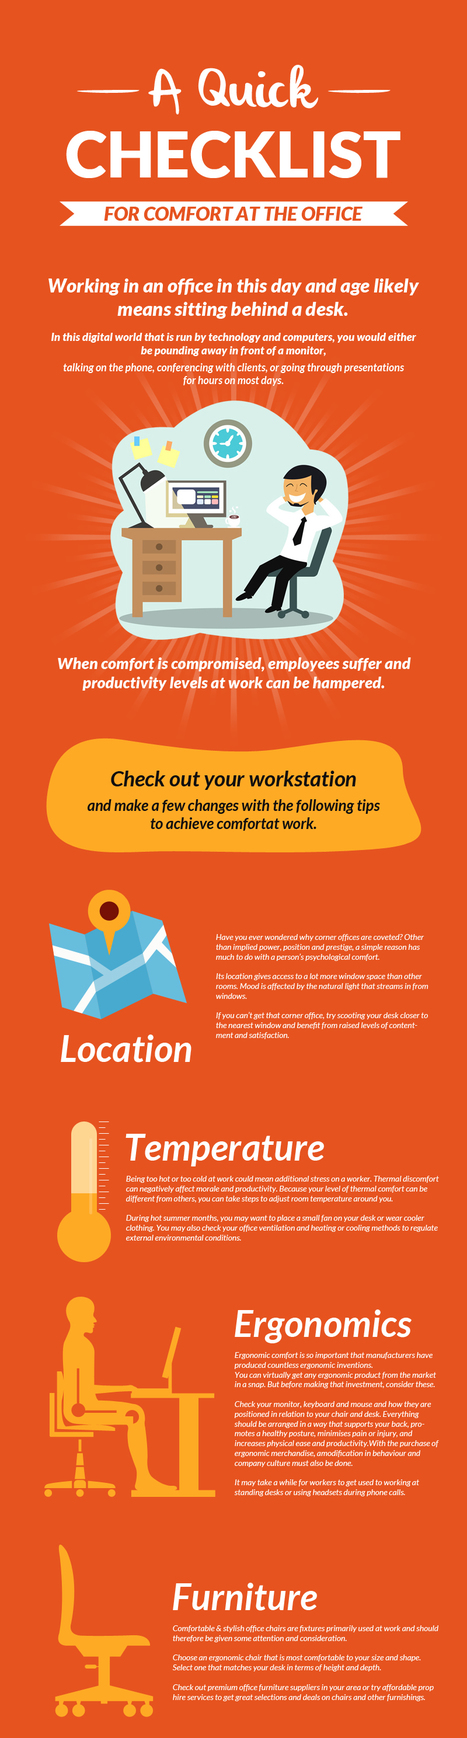 A Quick Checklist for Comfort at the Office | Office Furniture UK | Scoop.it